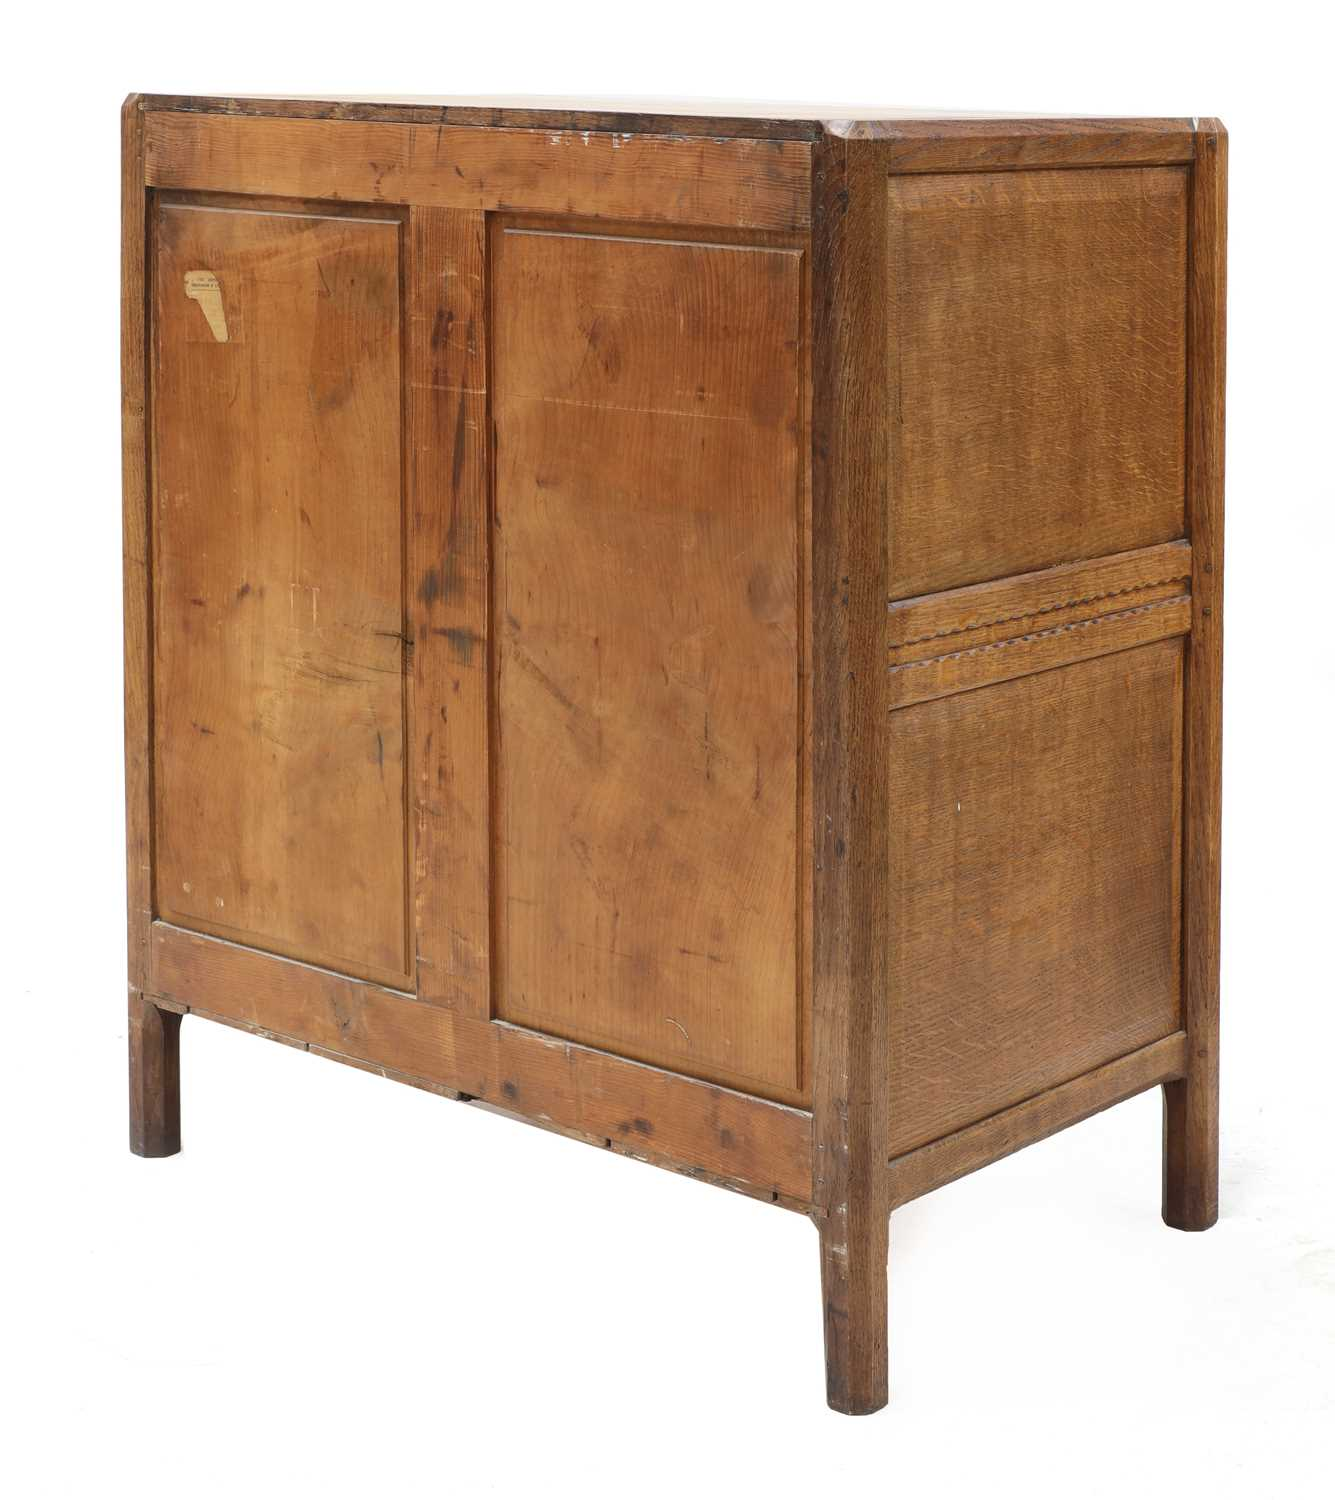 A Gordon Russell 'Stow' oak chest of four drawers, - Image 4 of 6